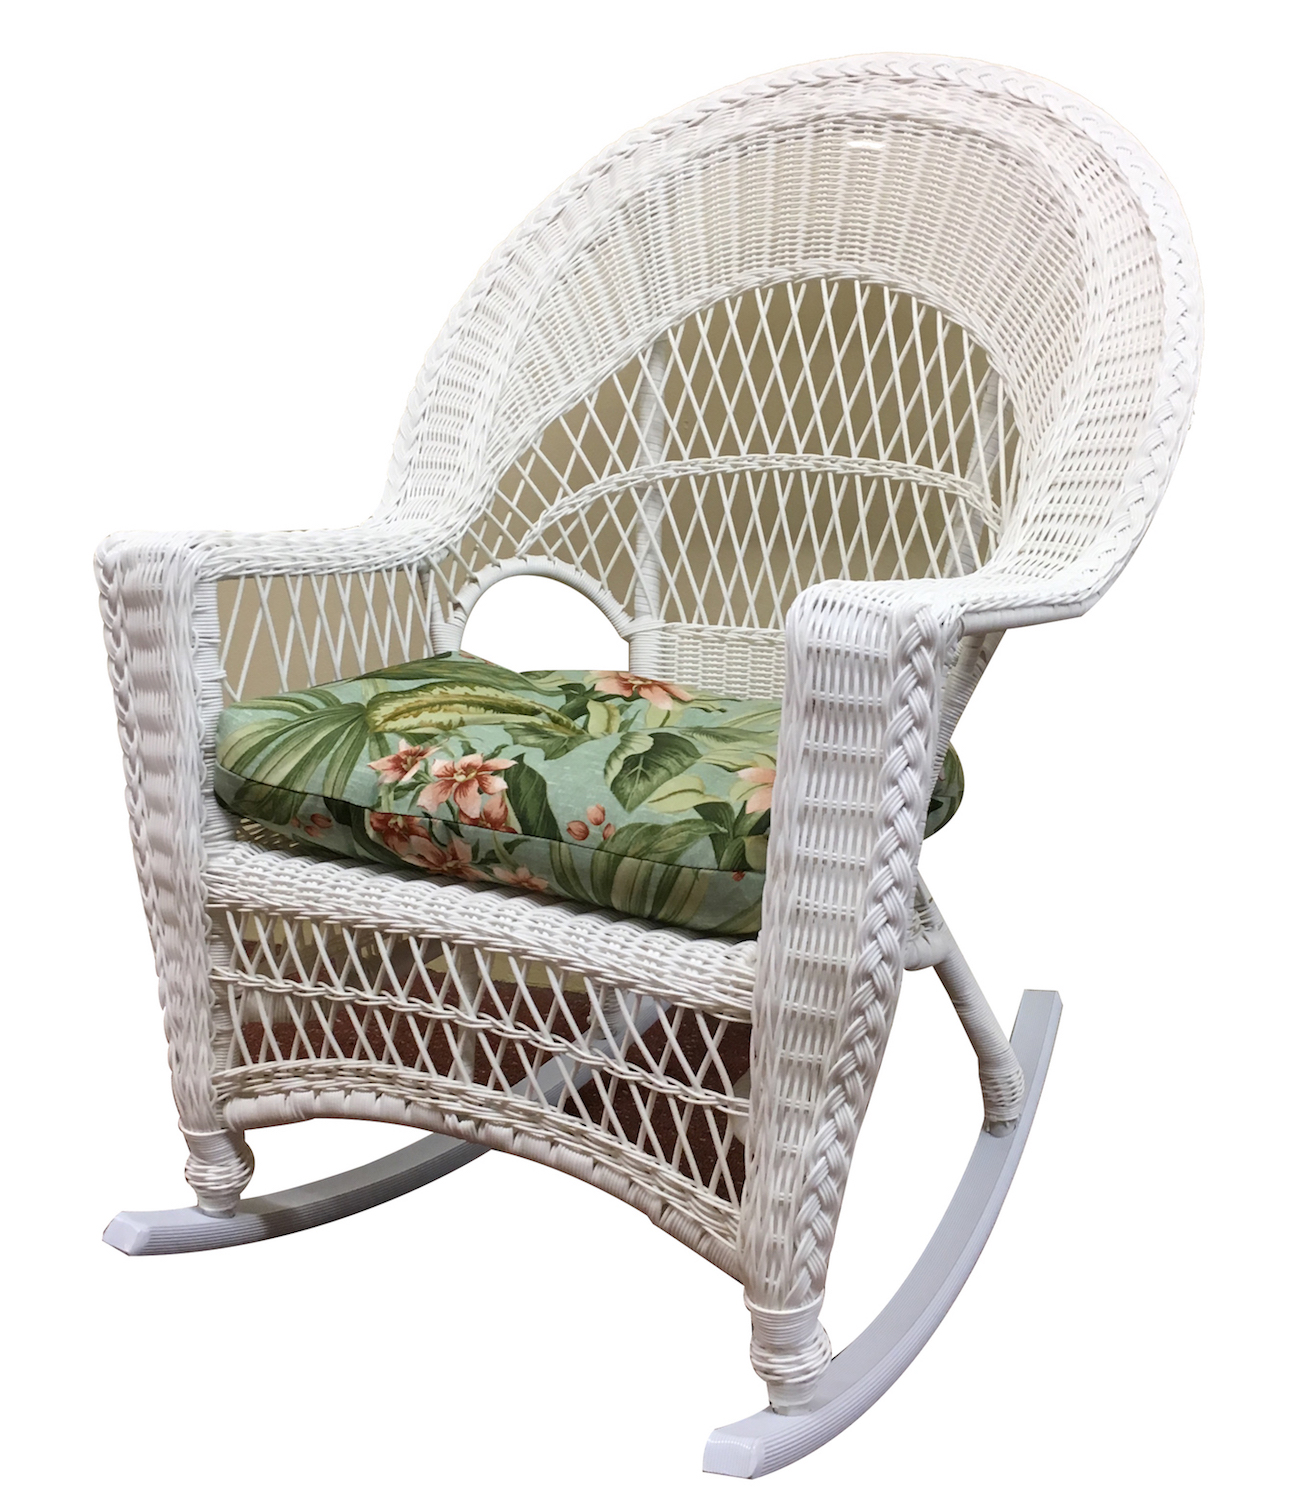 Wicker Rocker Chair Outdoor Wicker Rocker Cape Cod